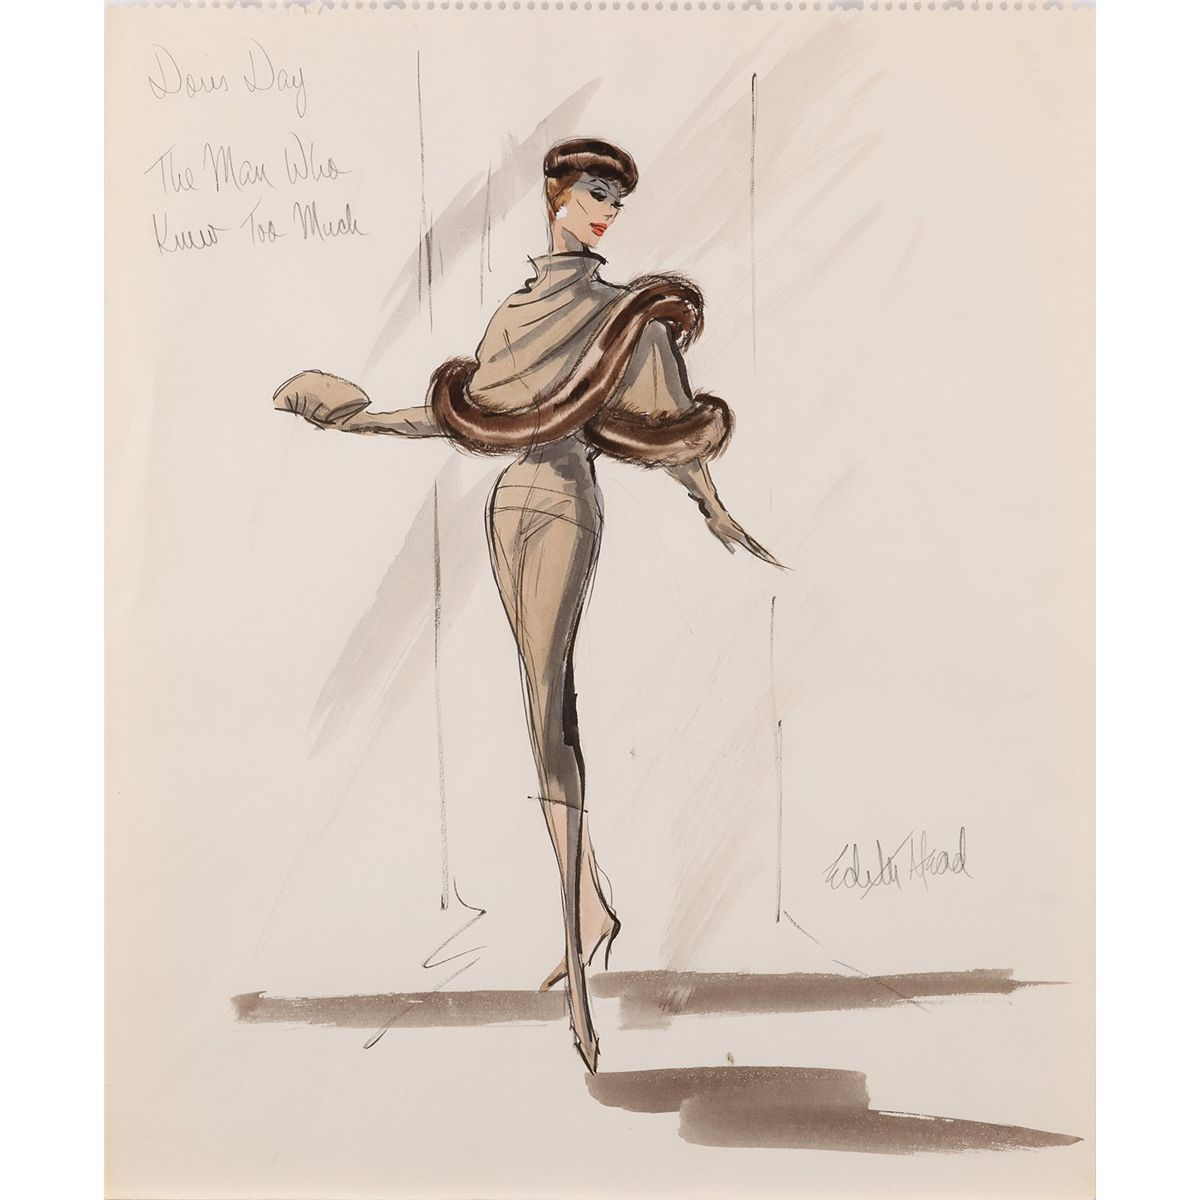 edith head costume design sketch for doris day from alfed